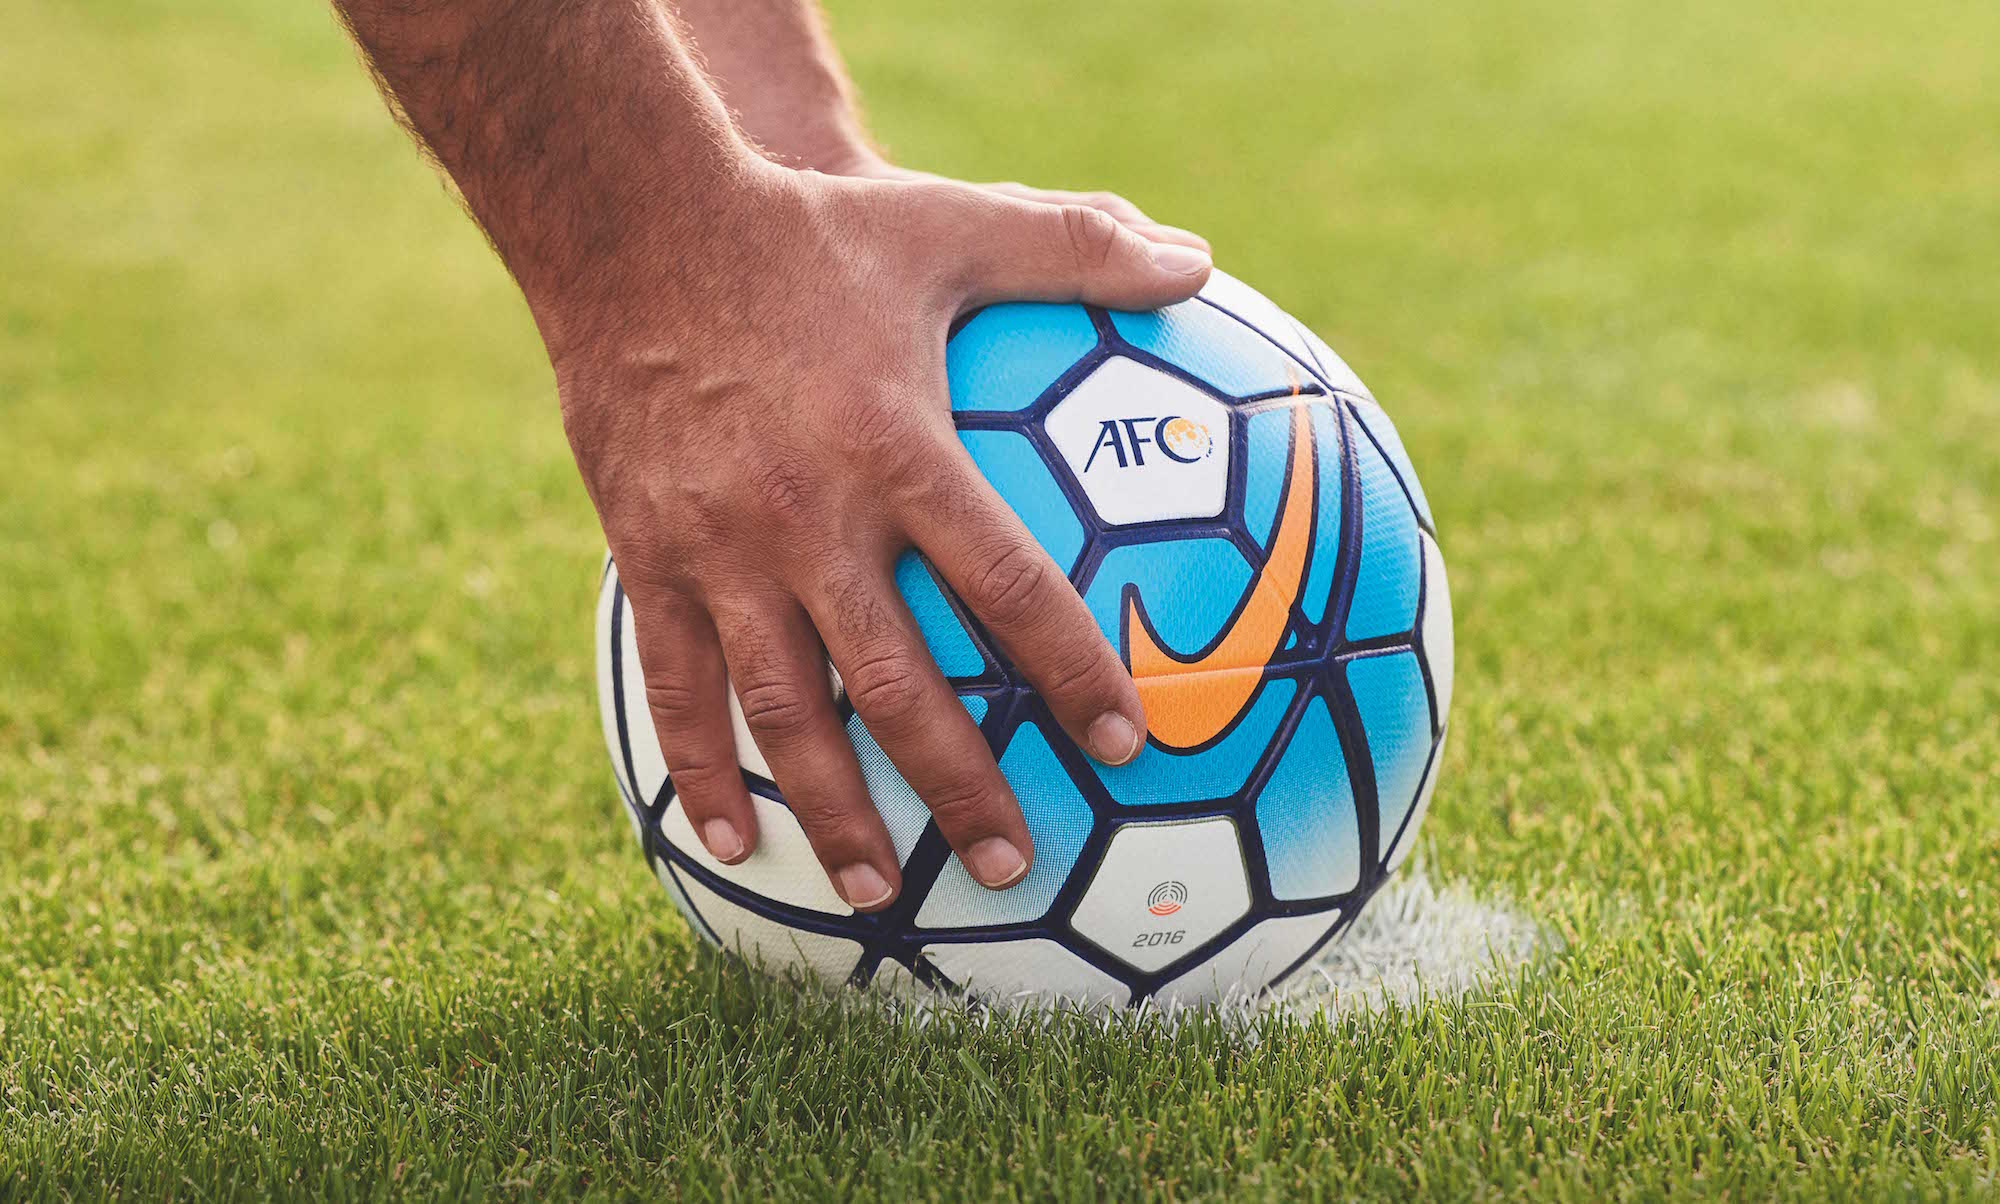 DCUP Football AFC